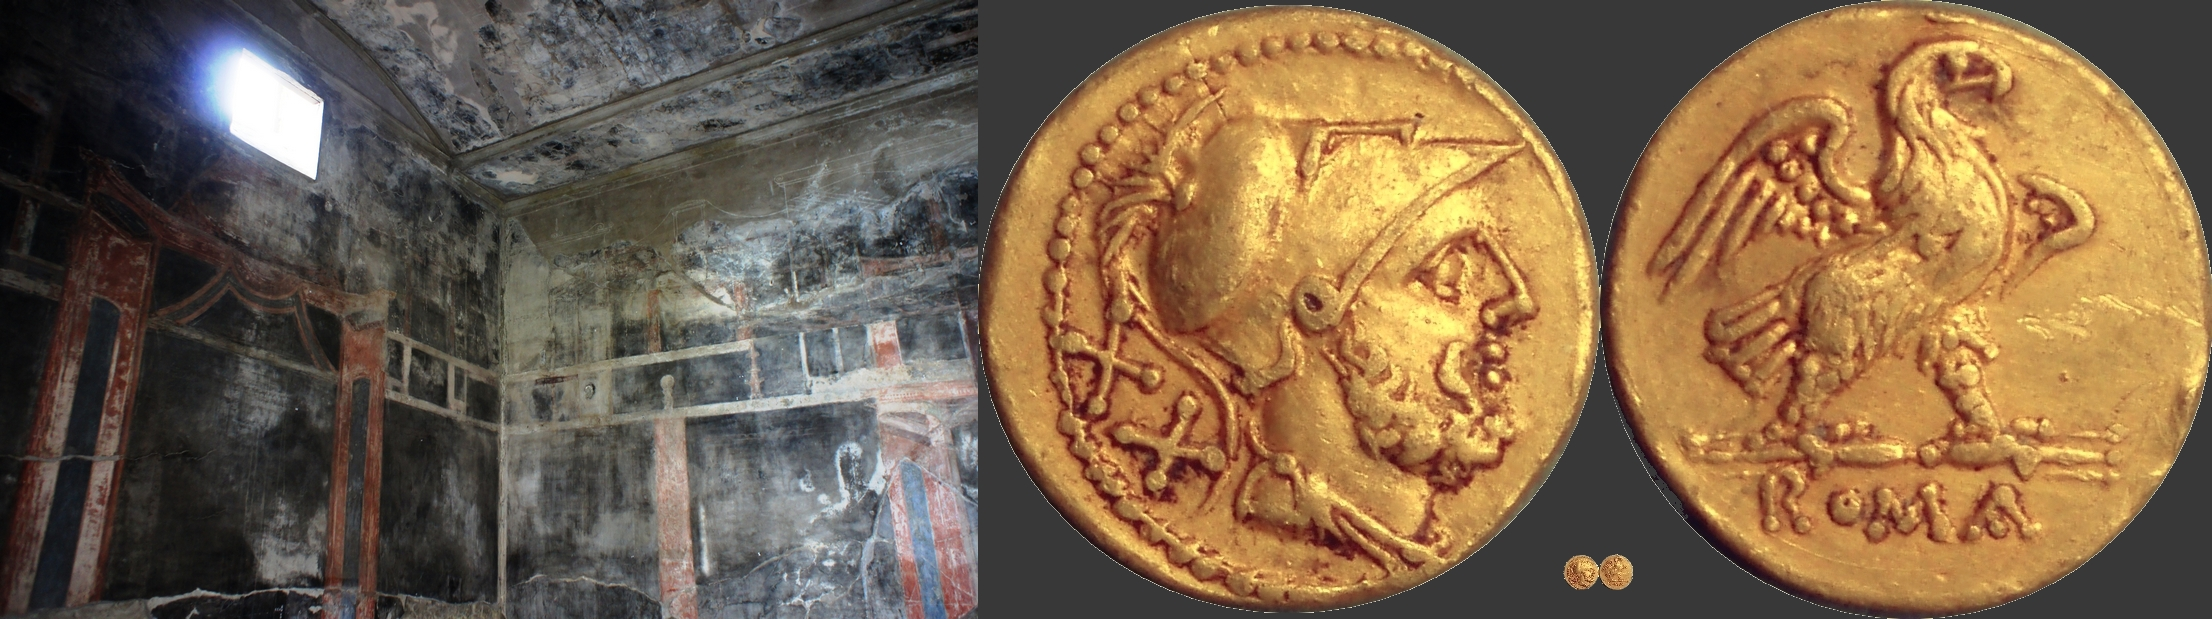 44/4 gold coin with Mars and Eagle of the 2nd Punic War, and ...